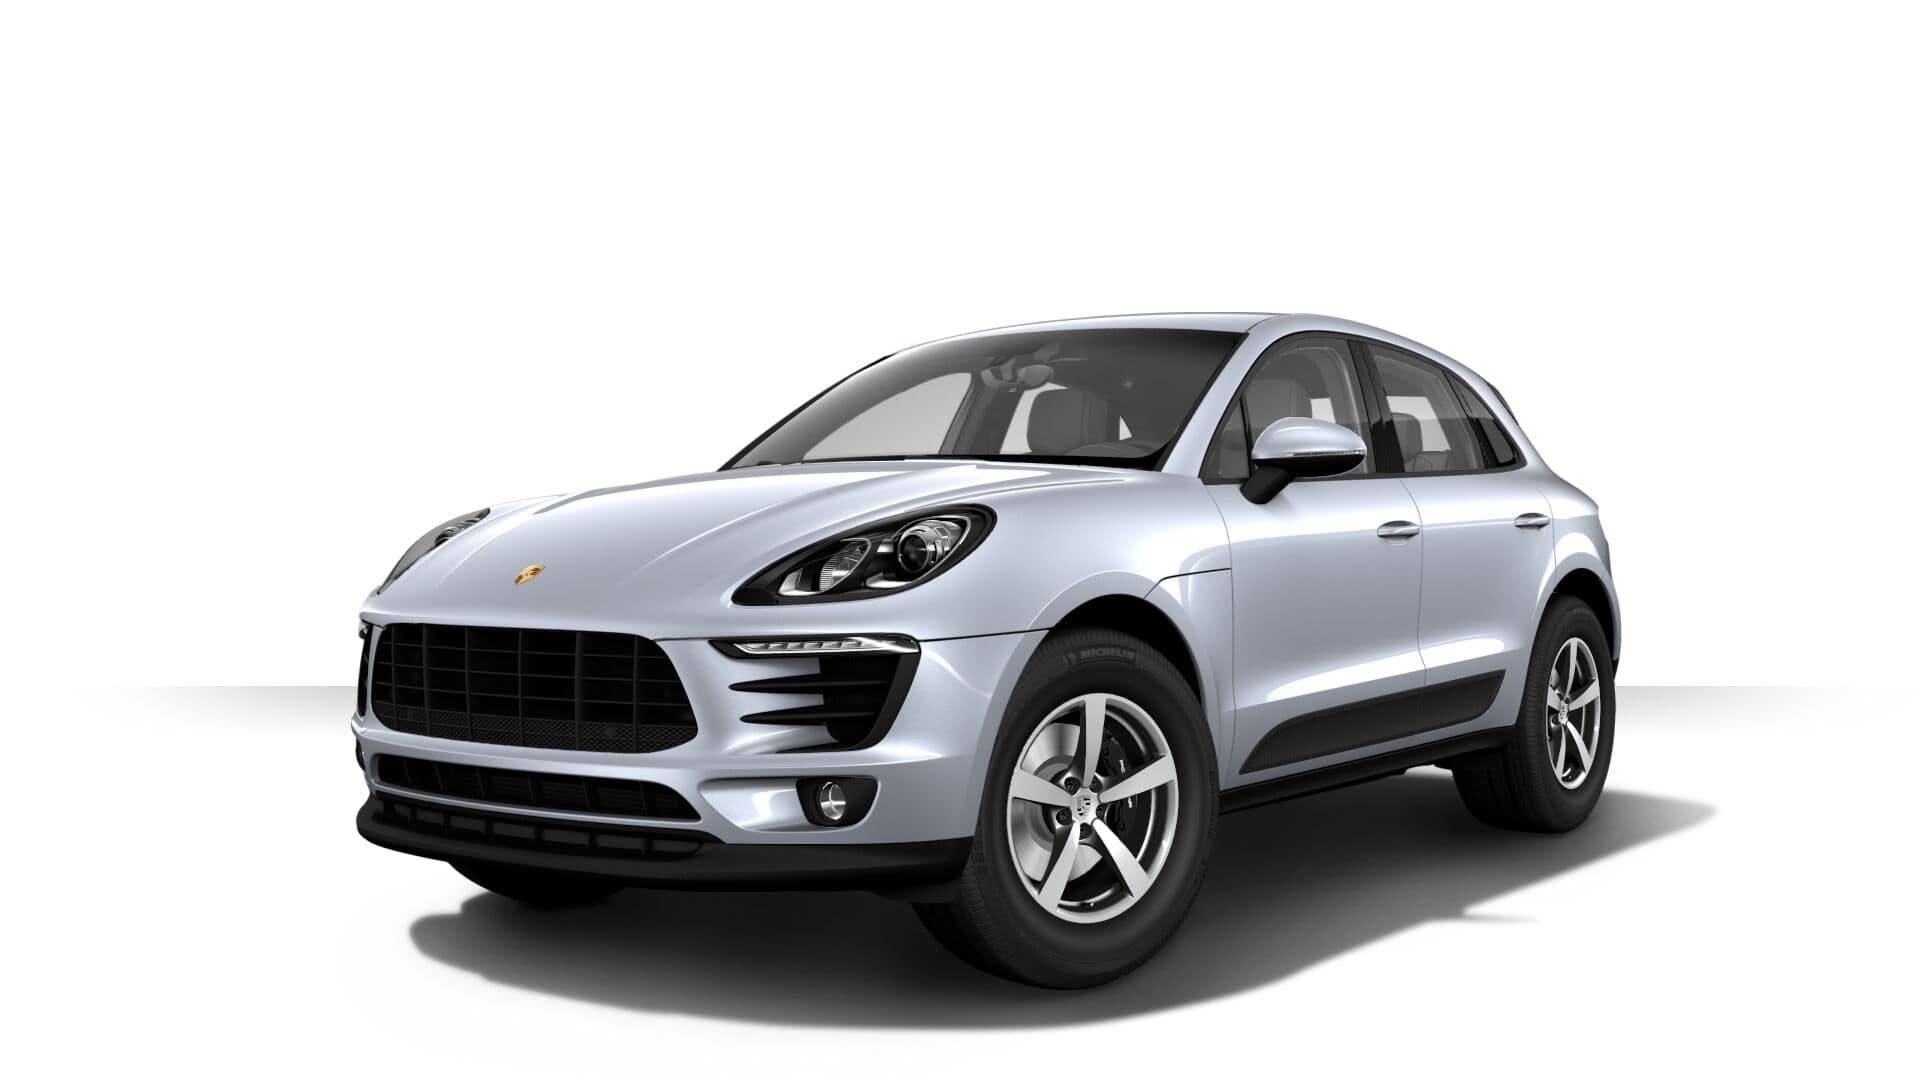 2018 Porsche Macan on white